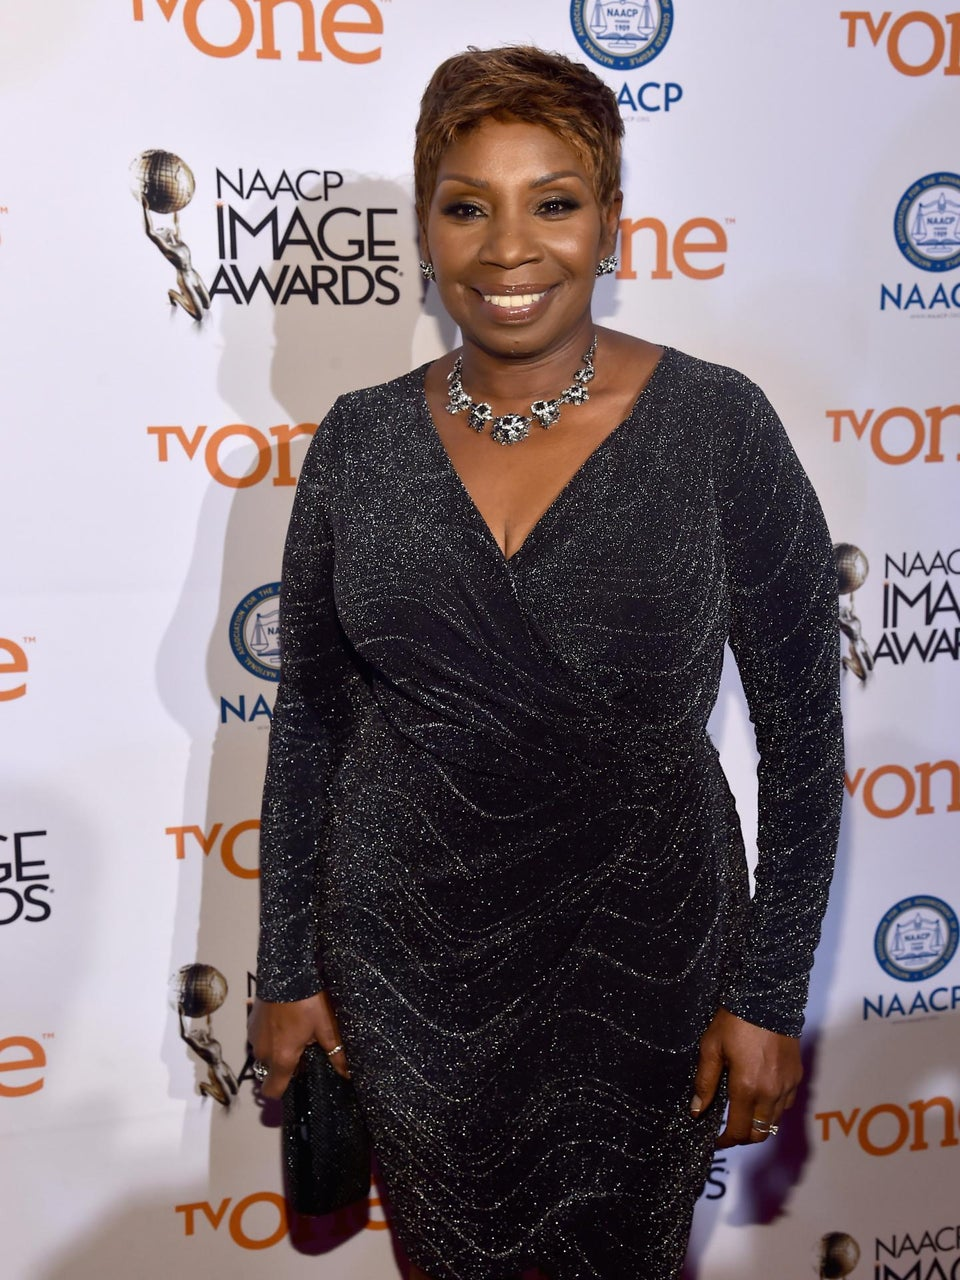 Iyanla Vanzant on Maintaining Her Peace: 'Police Are Shooting Black People; I Can't Be Acting Crazy'